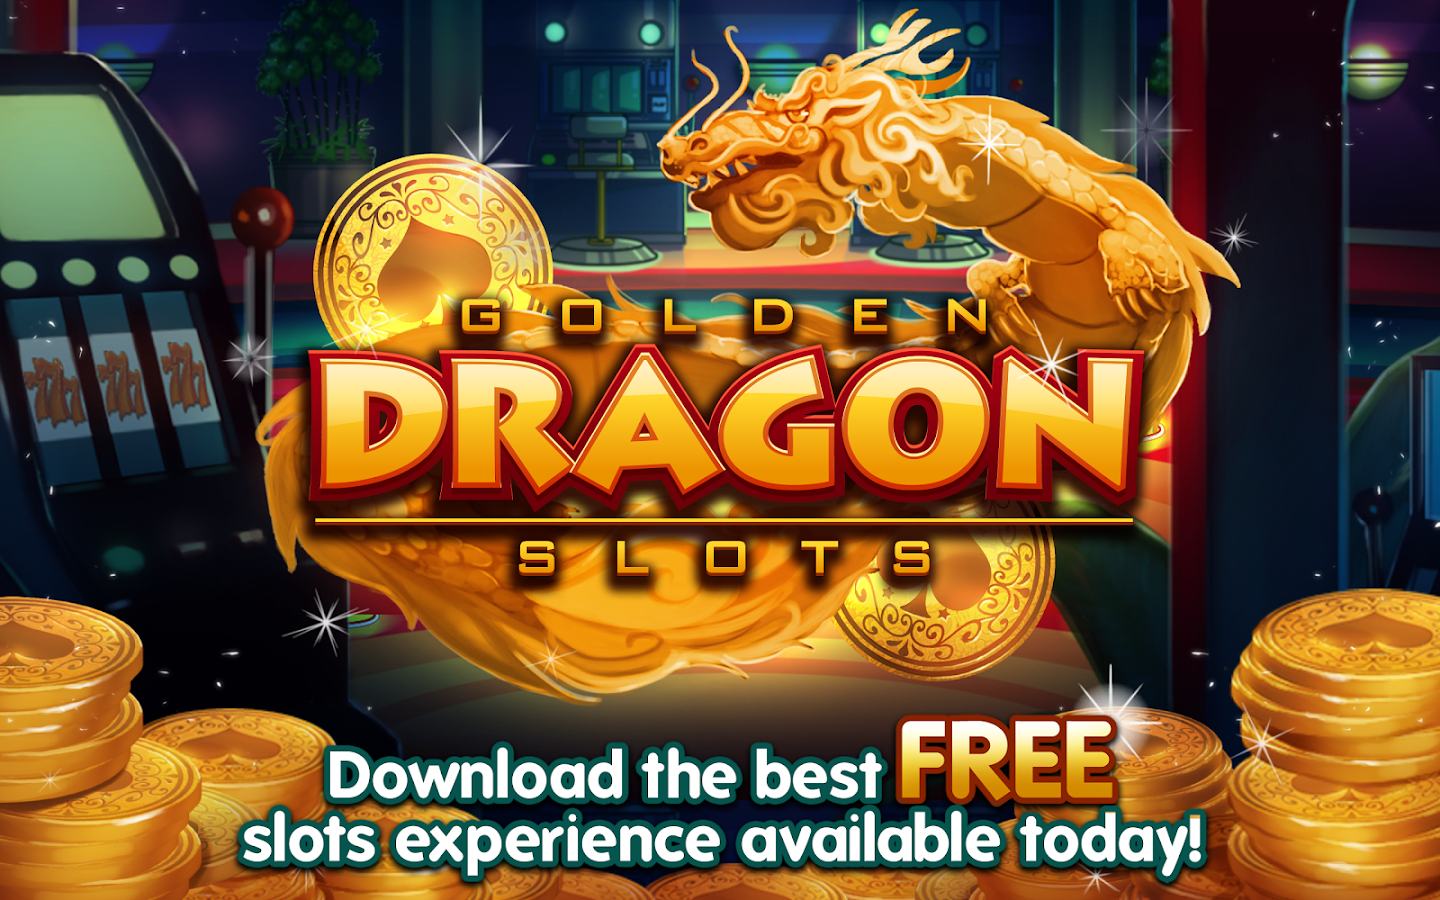 Golden Dragon Slots - Play Real Casino Slot Machines Online